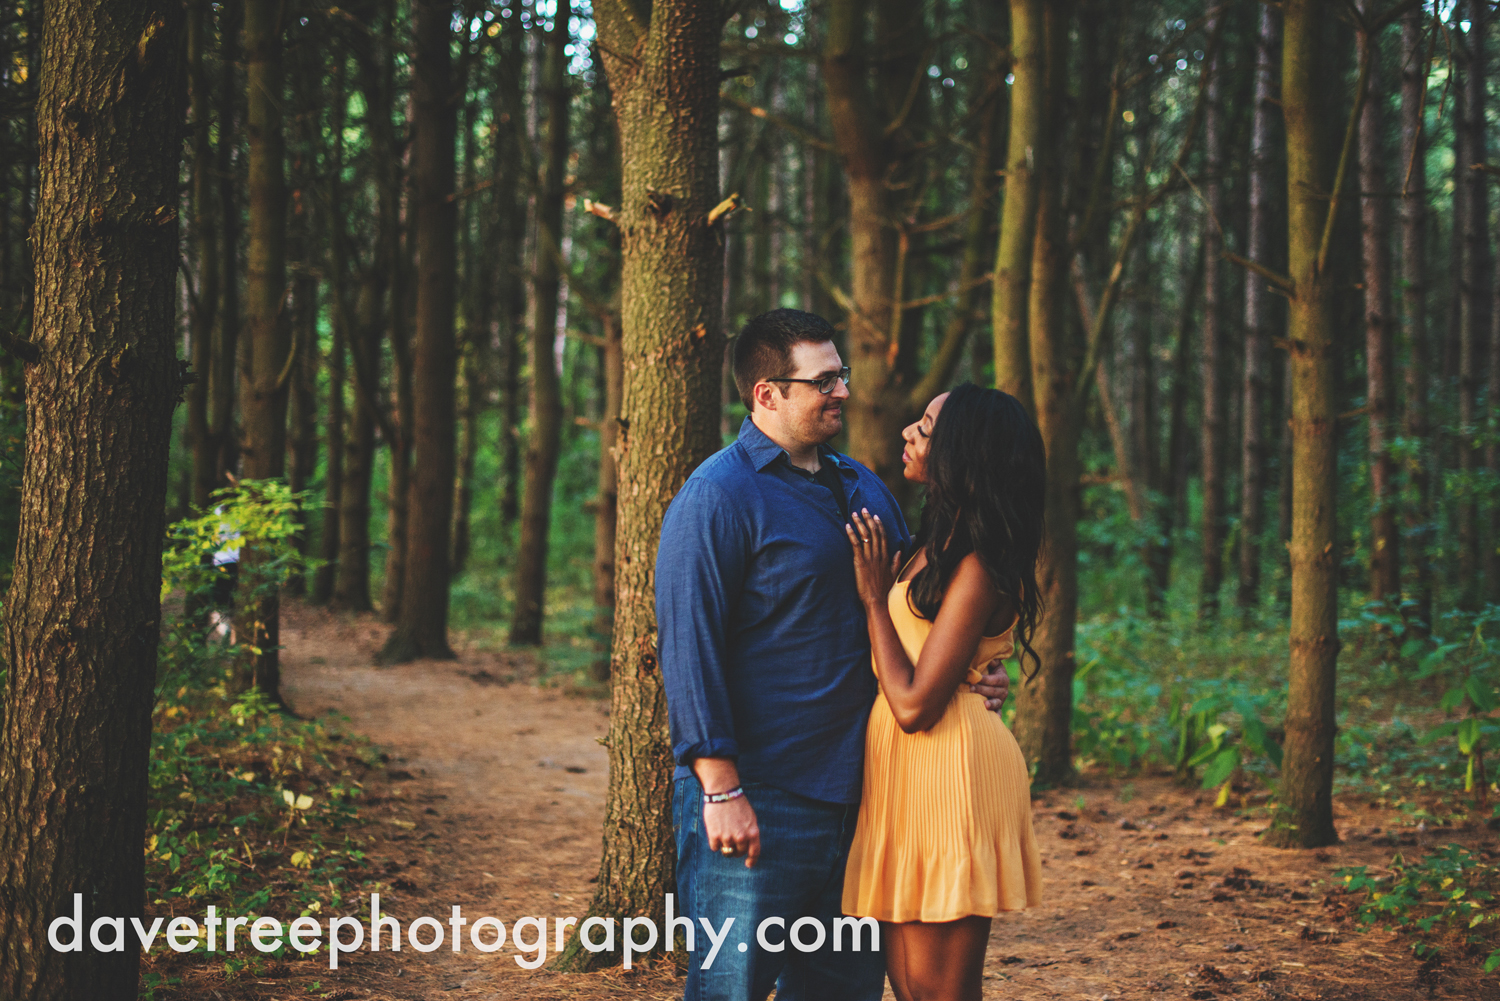 kalamazoo_wedding_photographer_kalamazoo_engagement_photographer_14.jpg